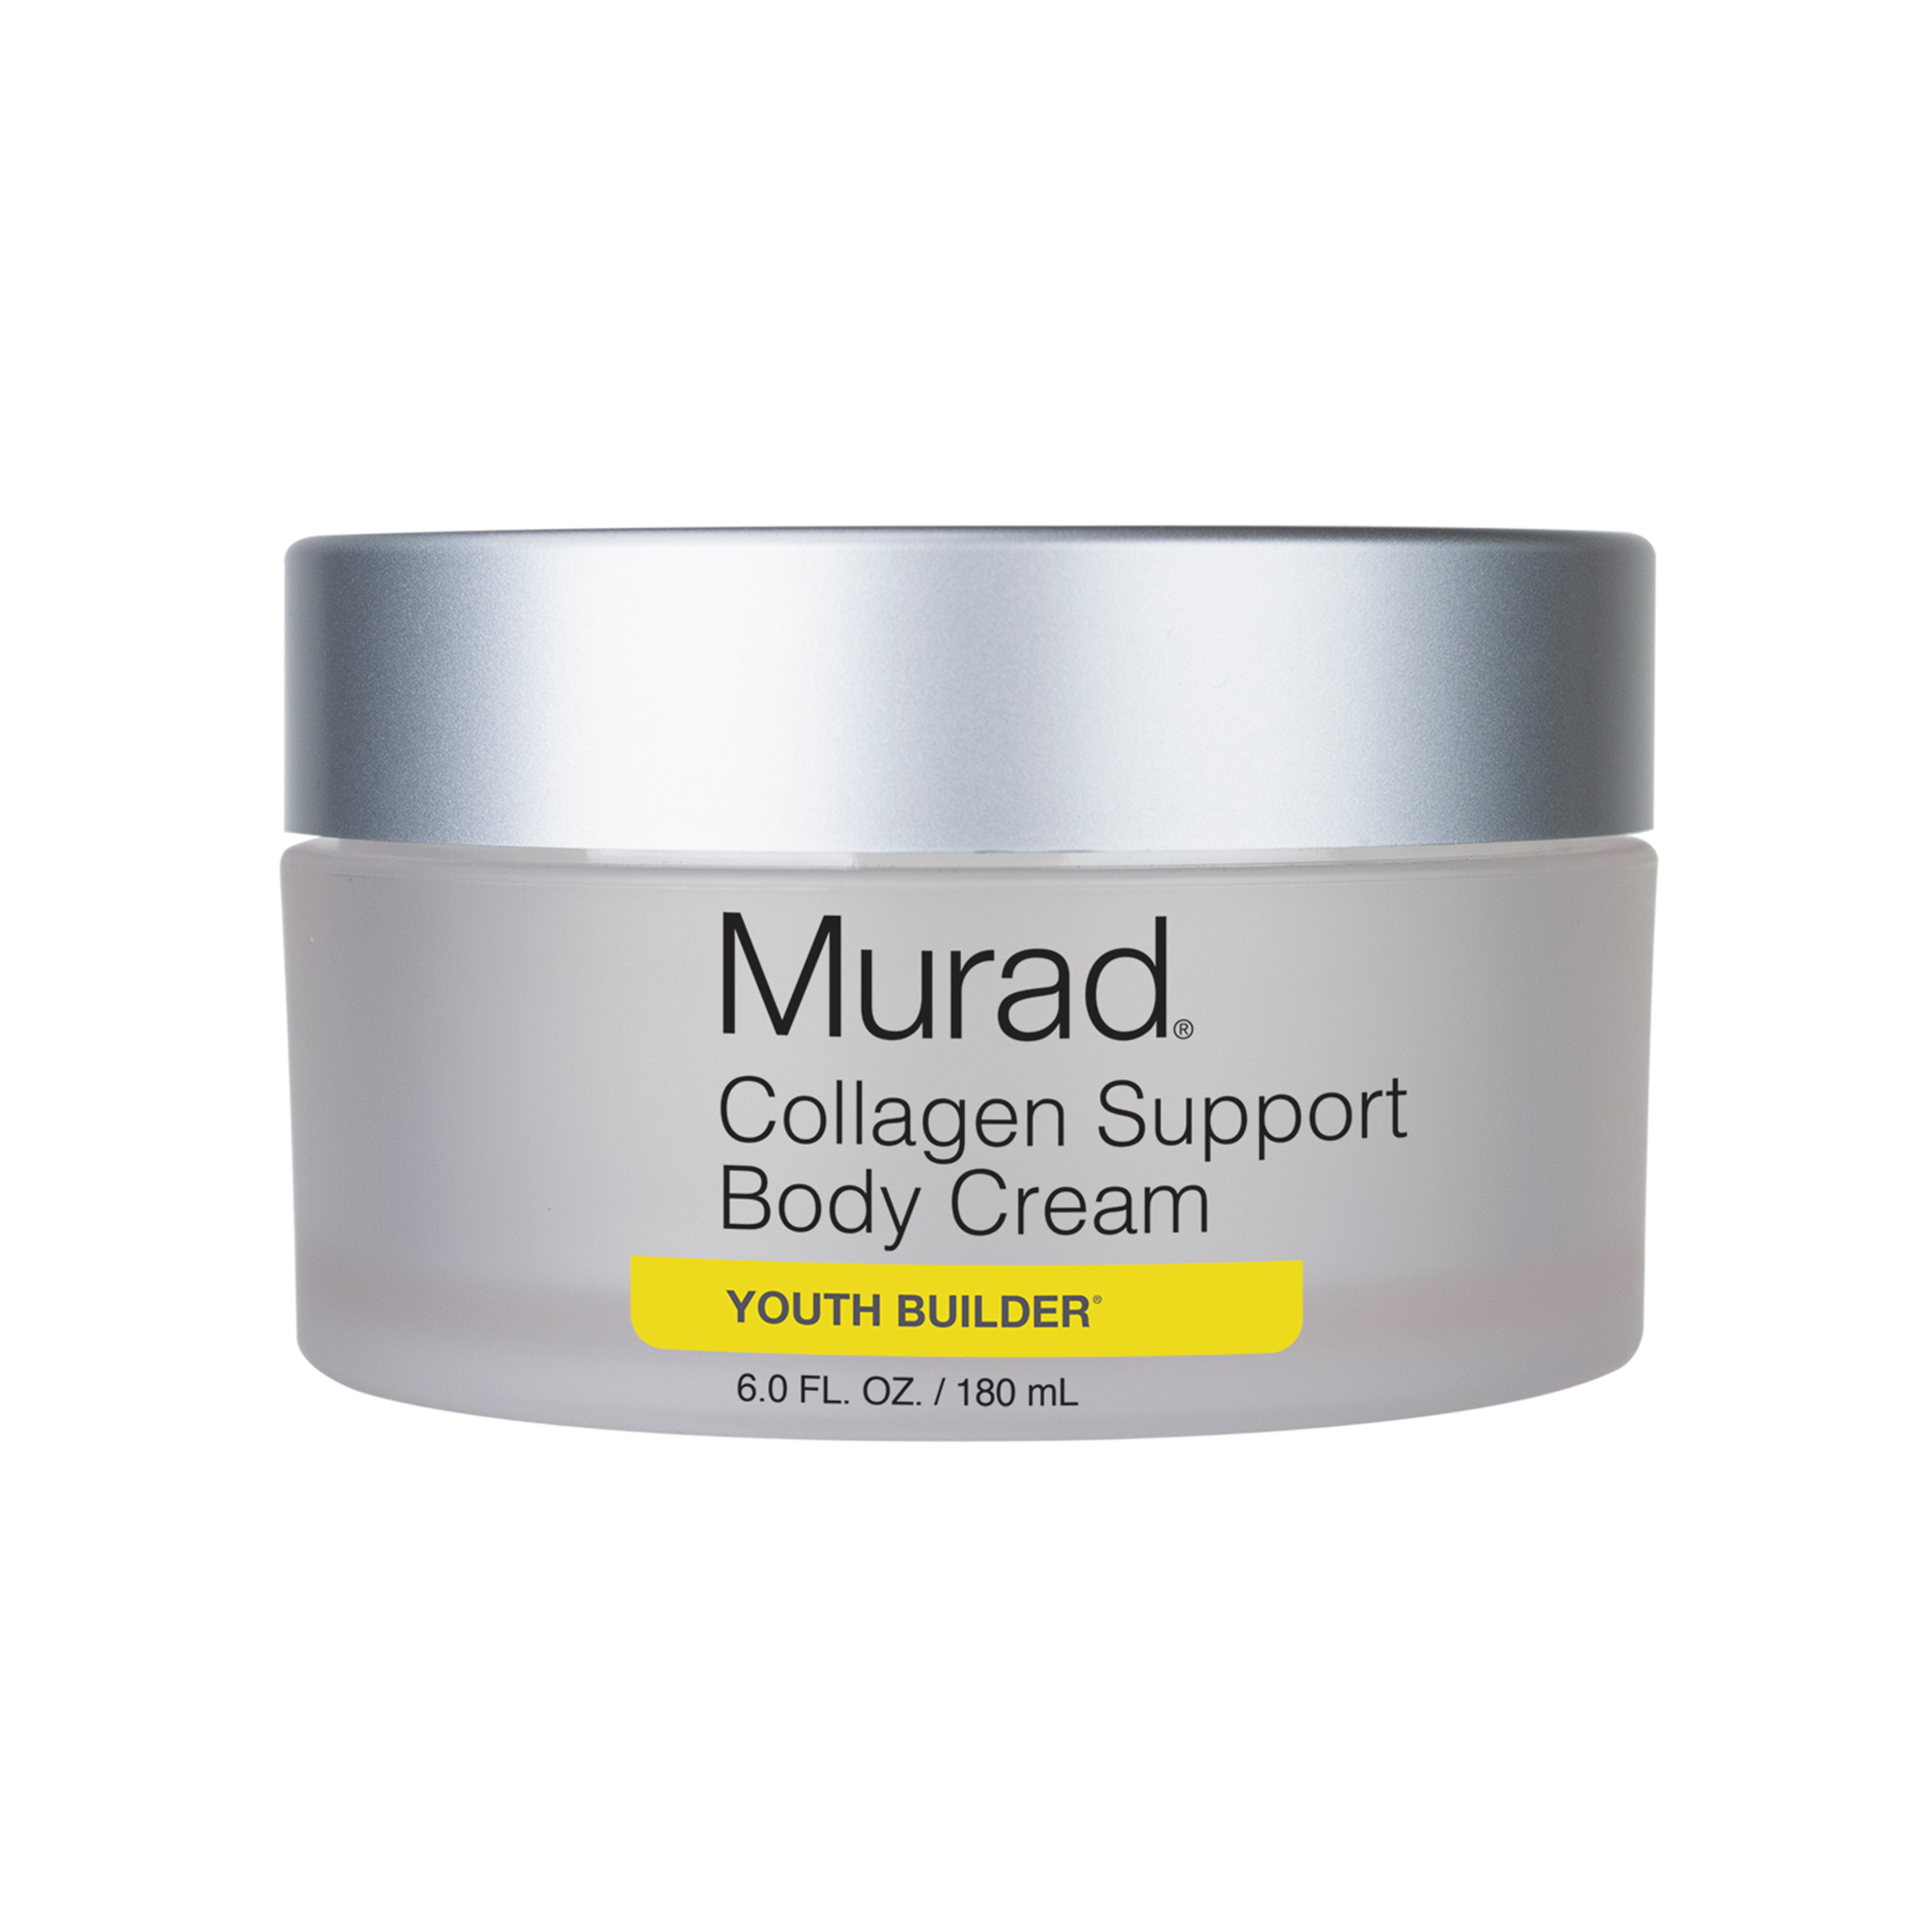 Murad Collagen Support Body Cream, £38